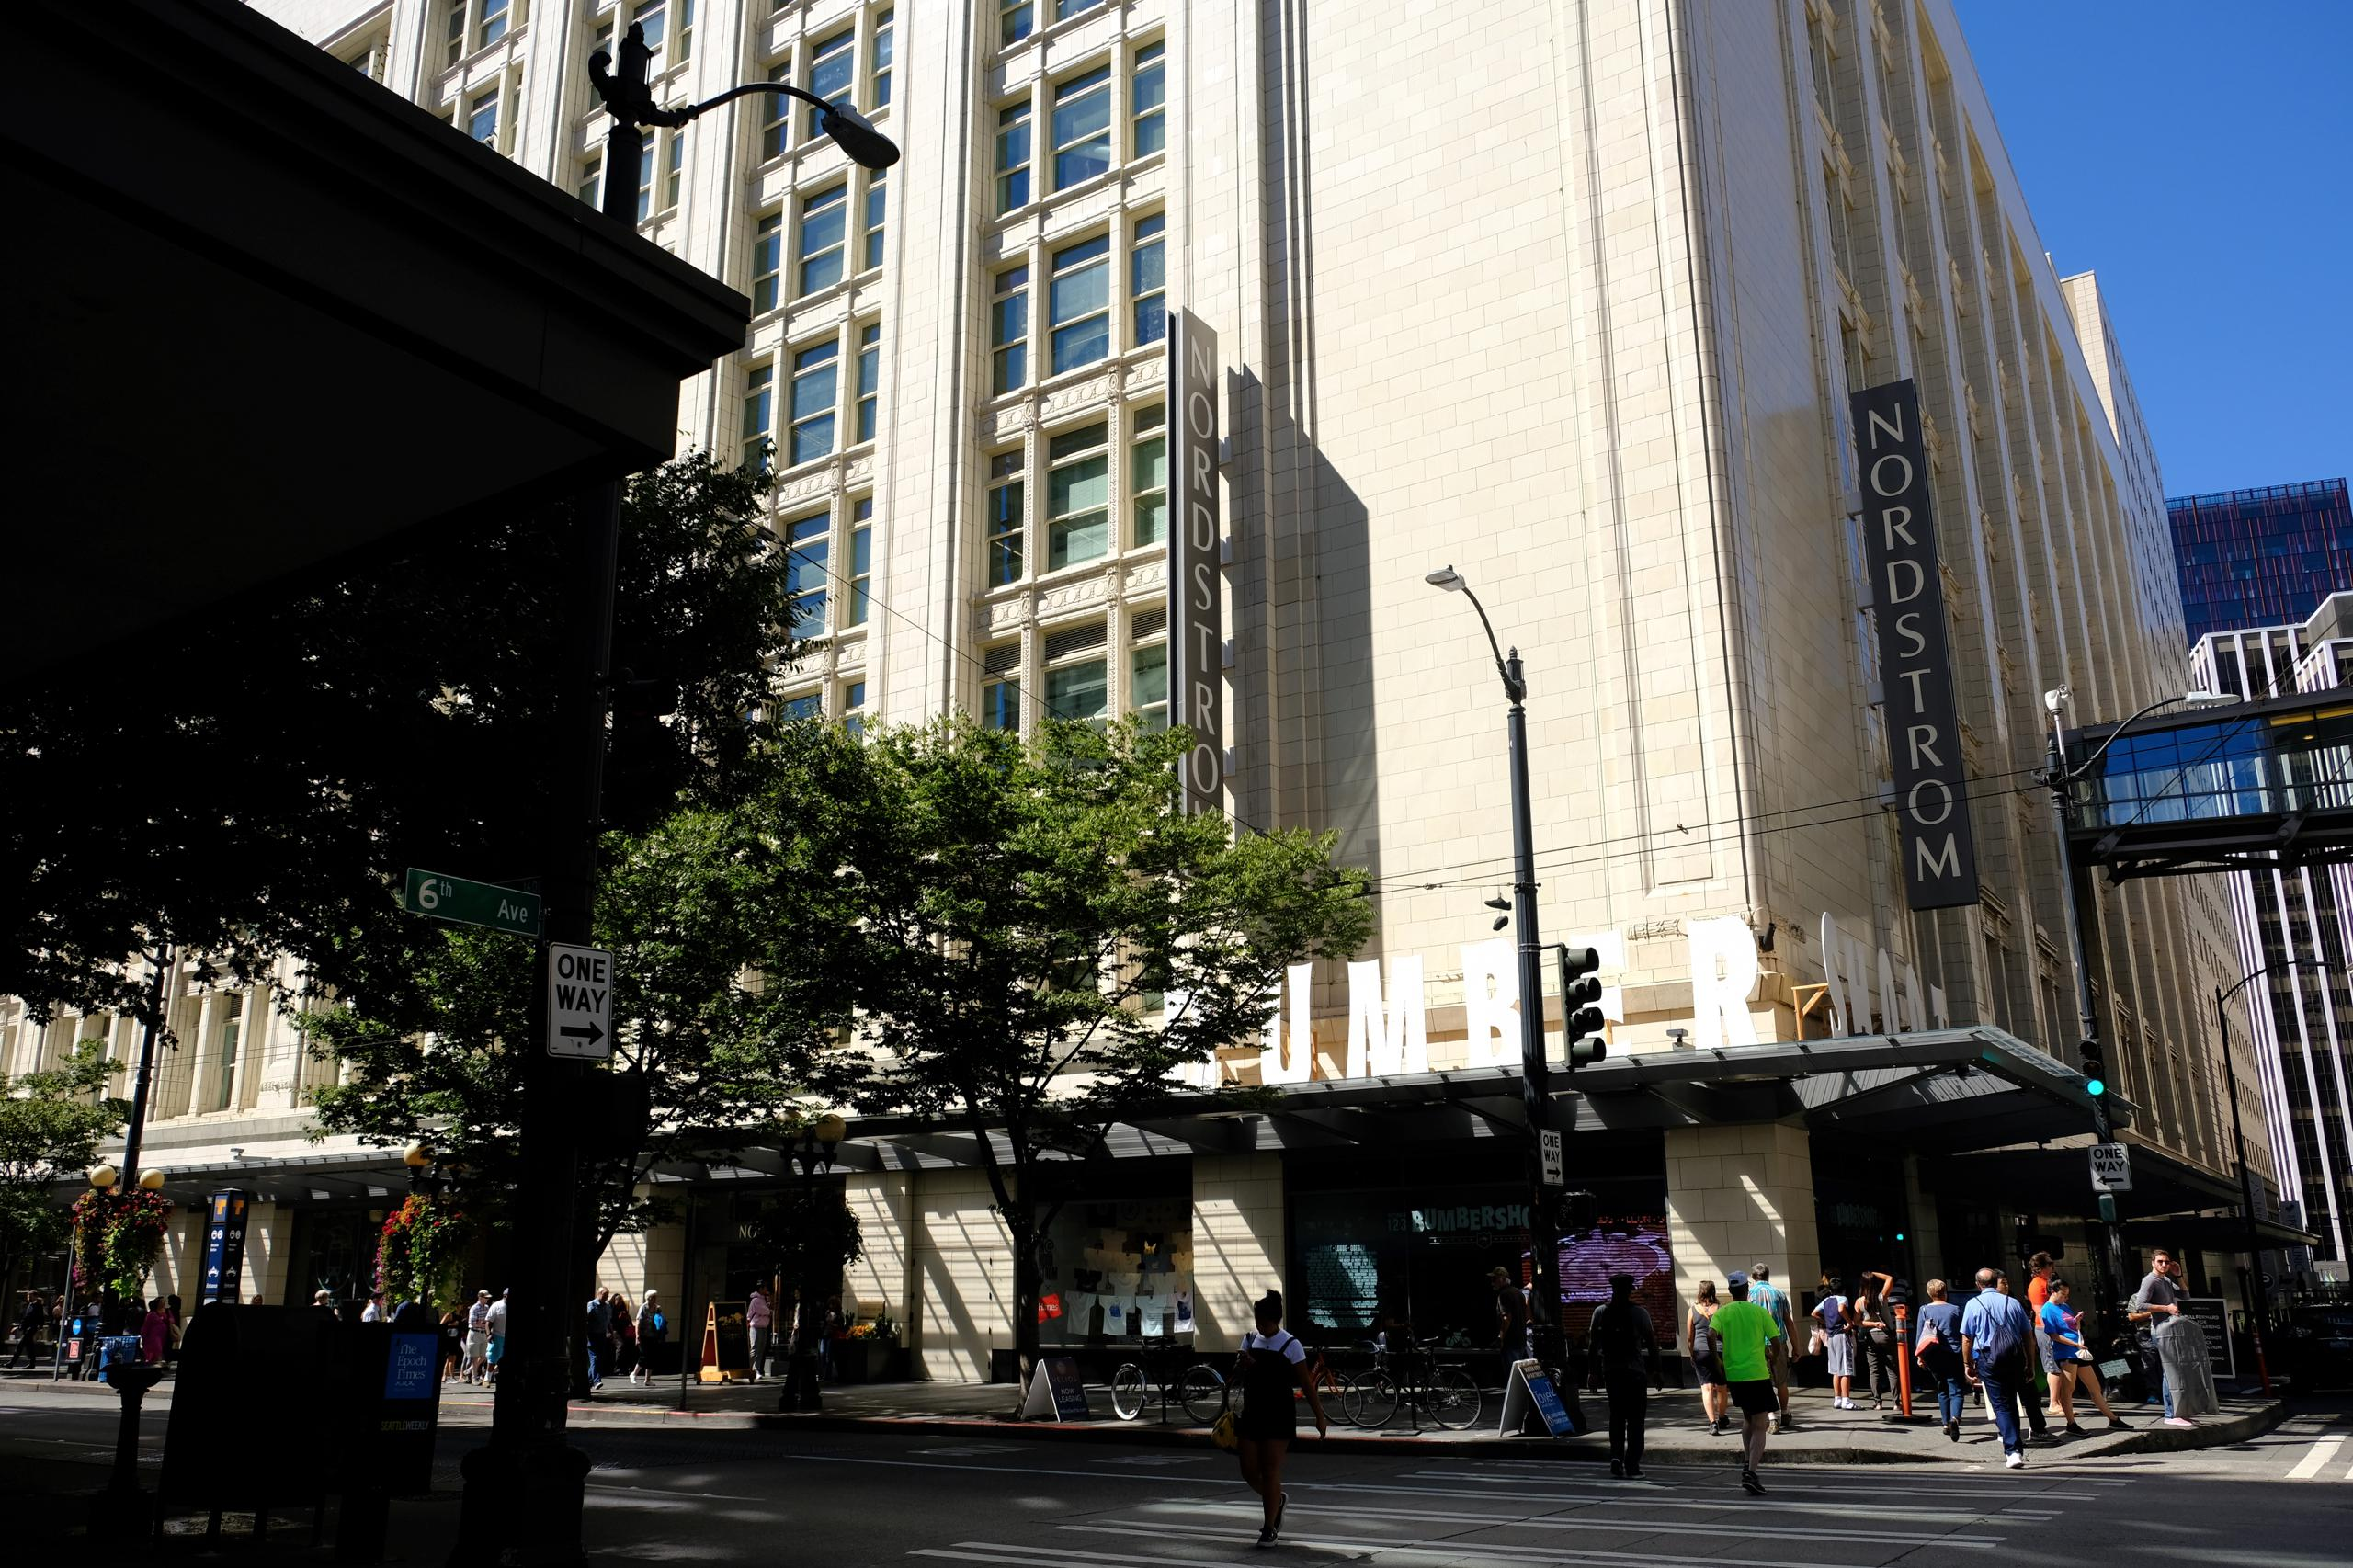 Nordstrom's corporate headquarters in downtown Seattle, Washington.